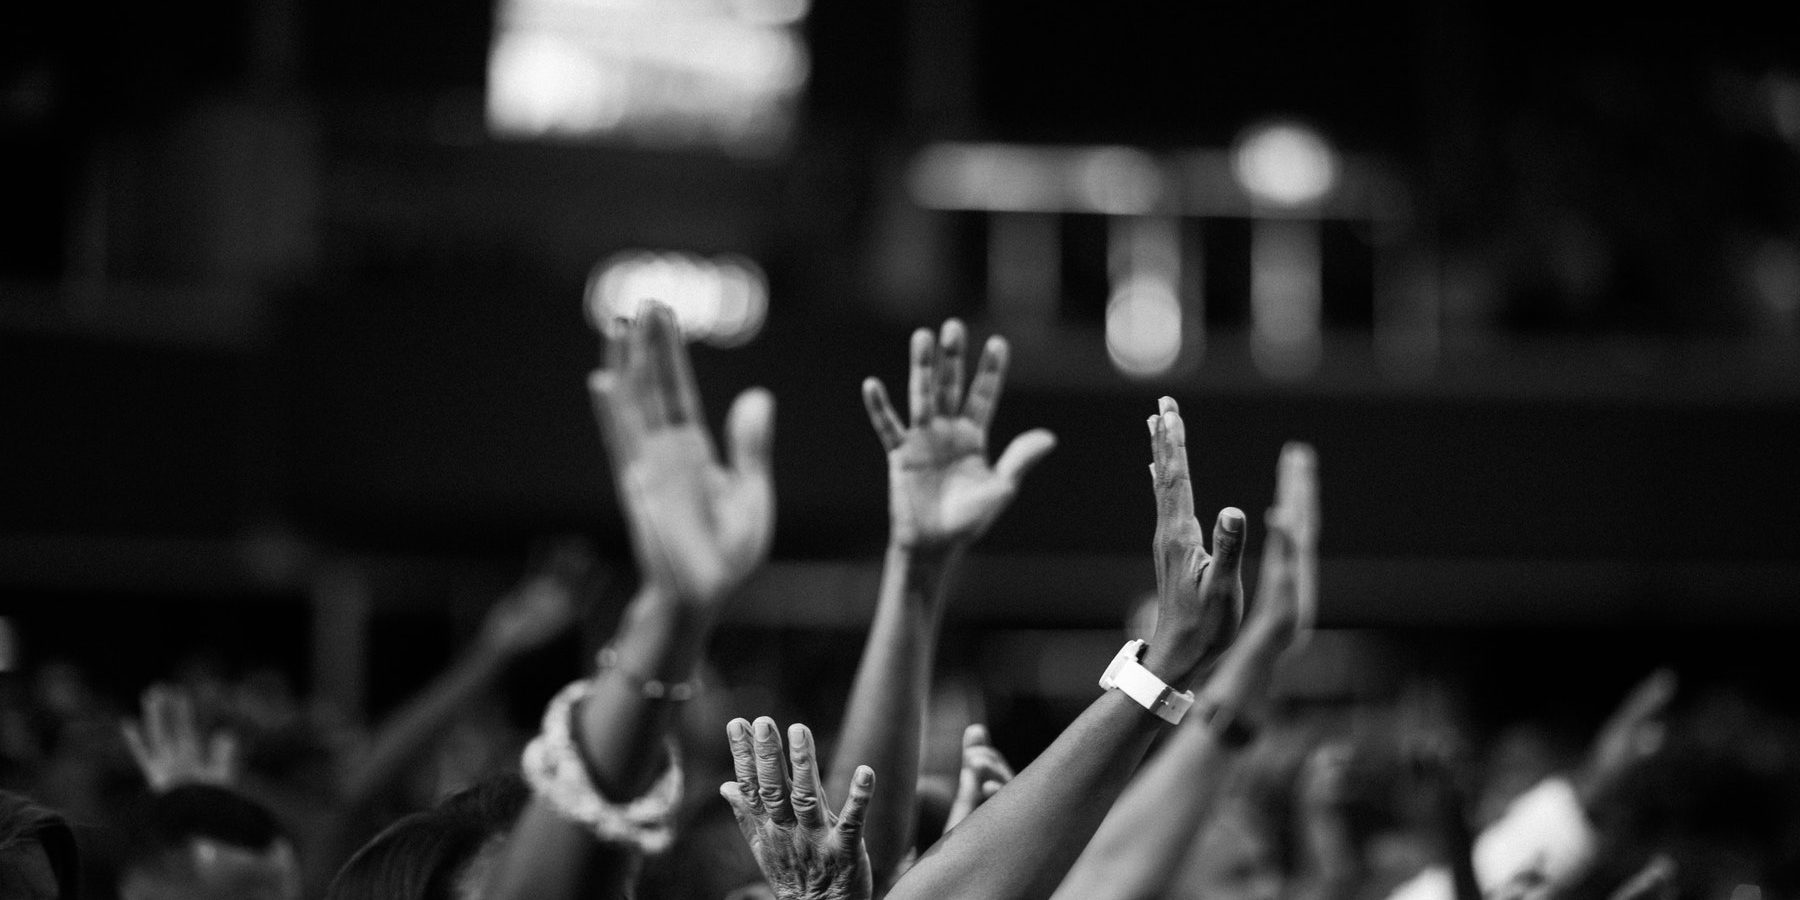 WORKERS audience-black-and-white-blur-2014775 (1)